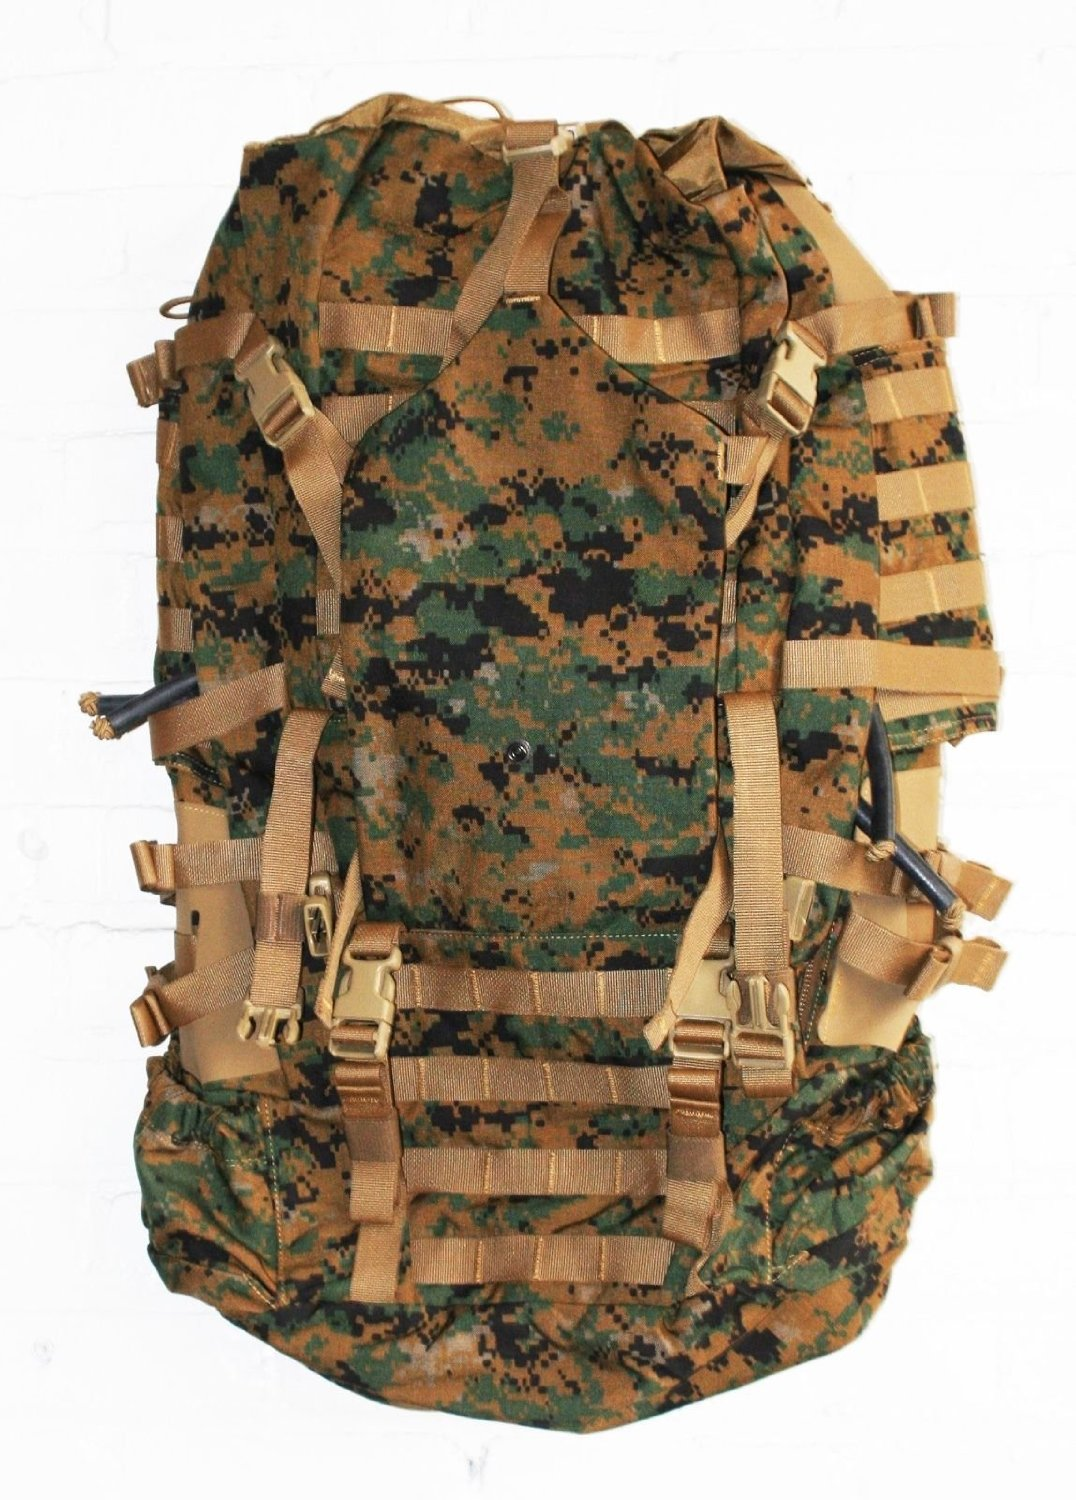 ed18b0becfb Get Quotations · USMC Field Pack, MARPAT Main Pack, Woodland Digital  Camouflage, Spare Part, Component